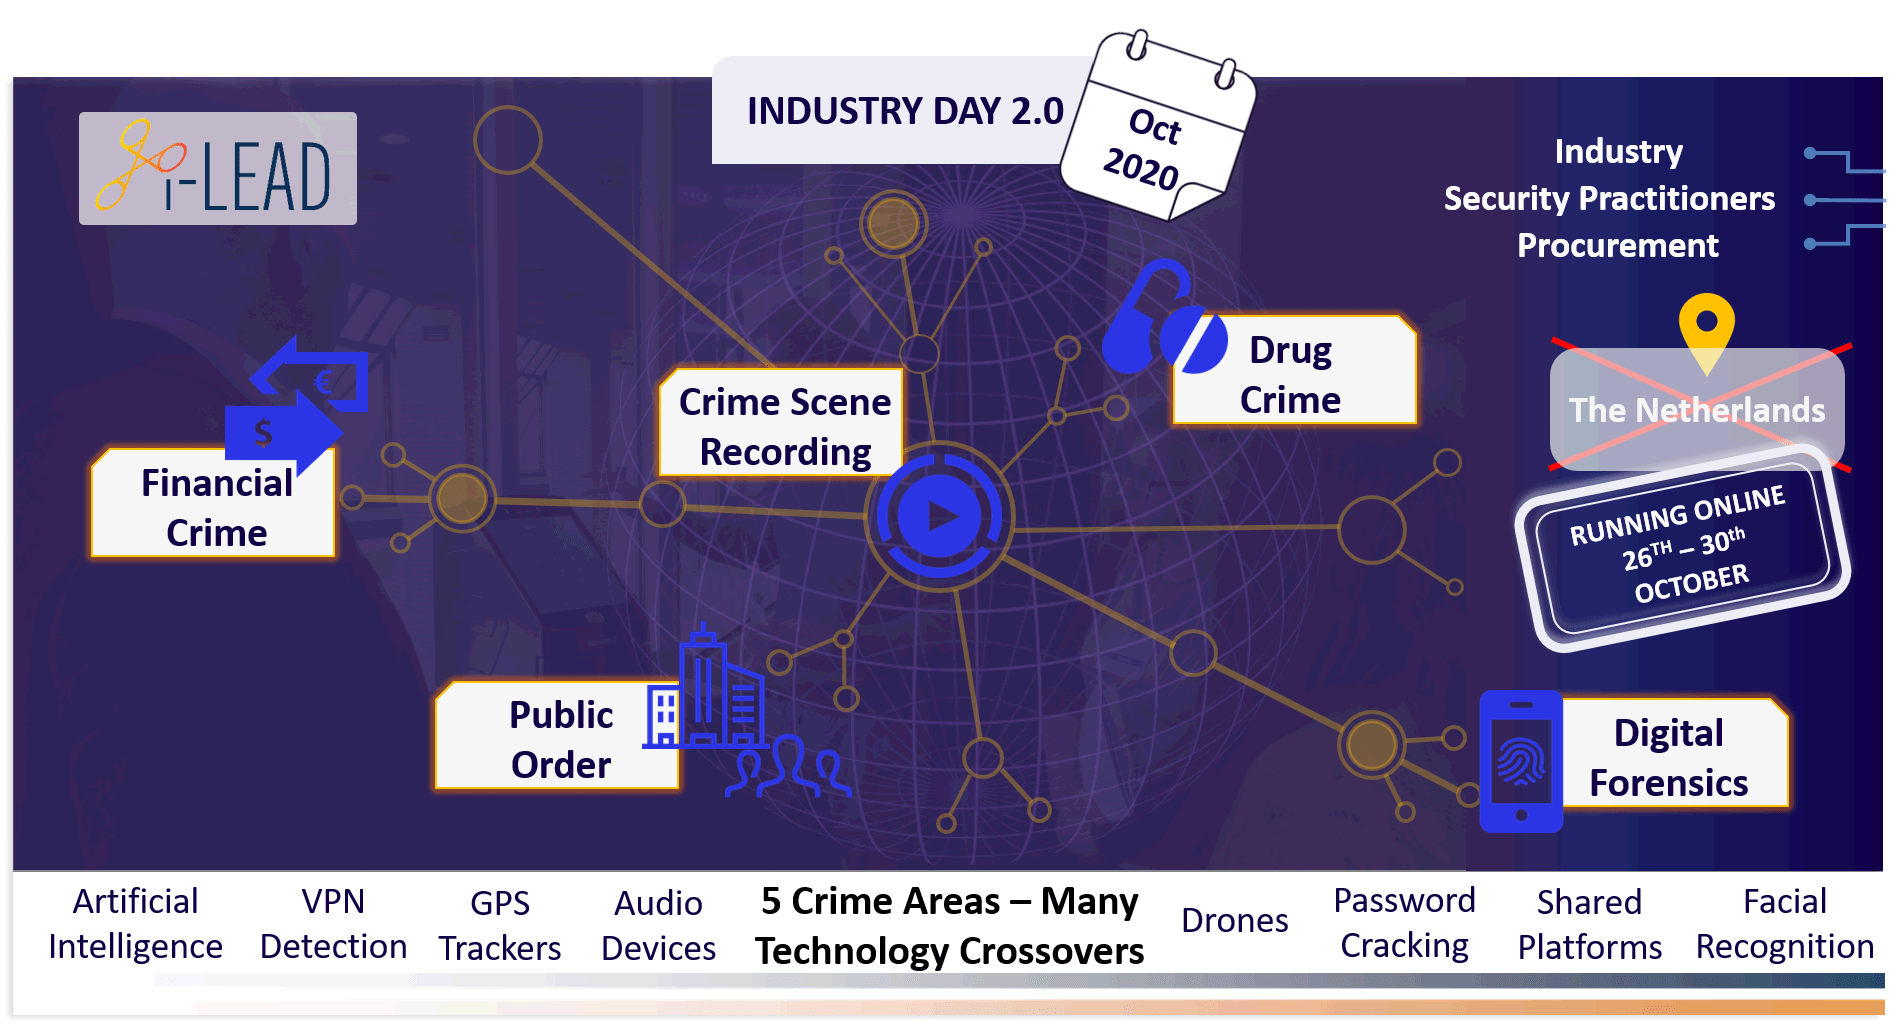 i-LEAD Industry Days - banner